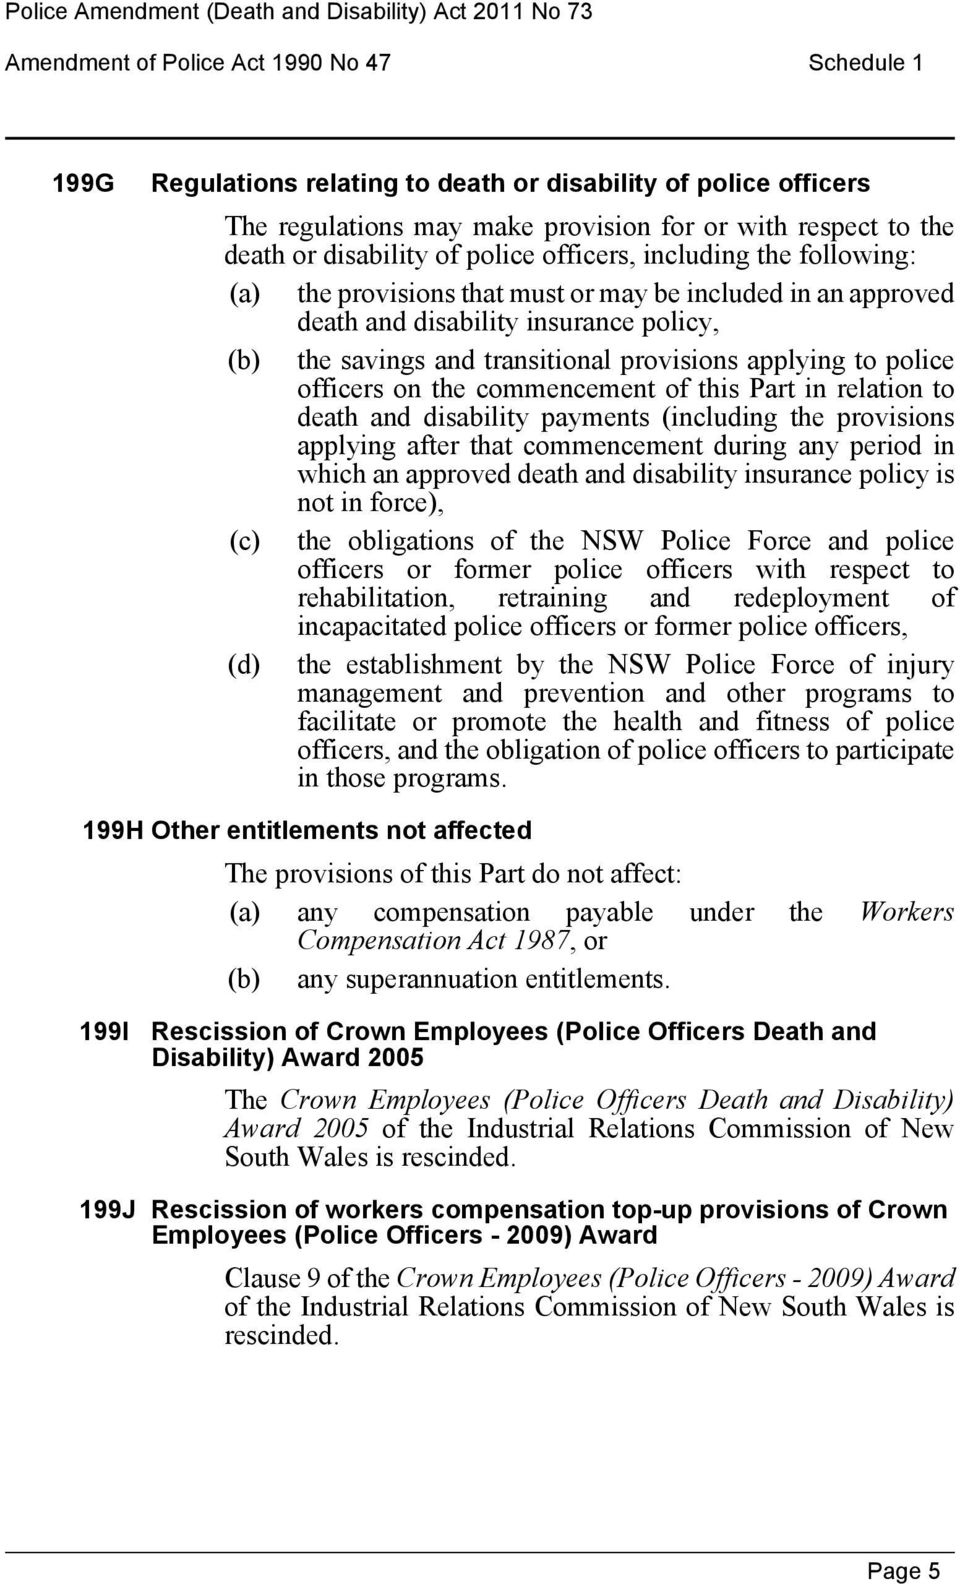 police officers on the commencement of this Part in relation to death and disability payments (including the provisions applying after that commencement during any period in which an approved death